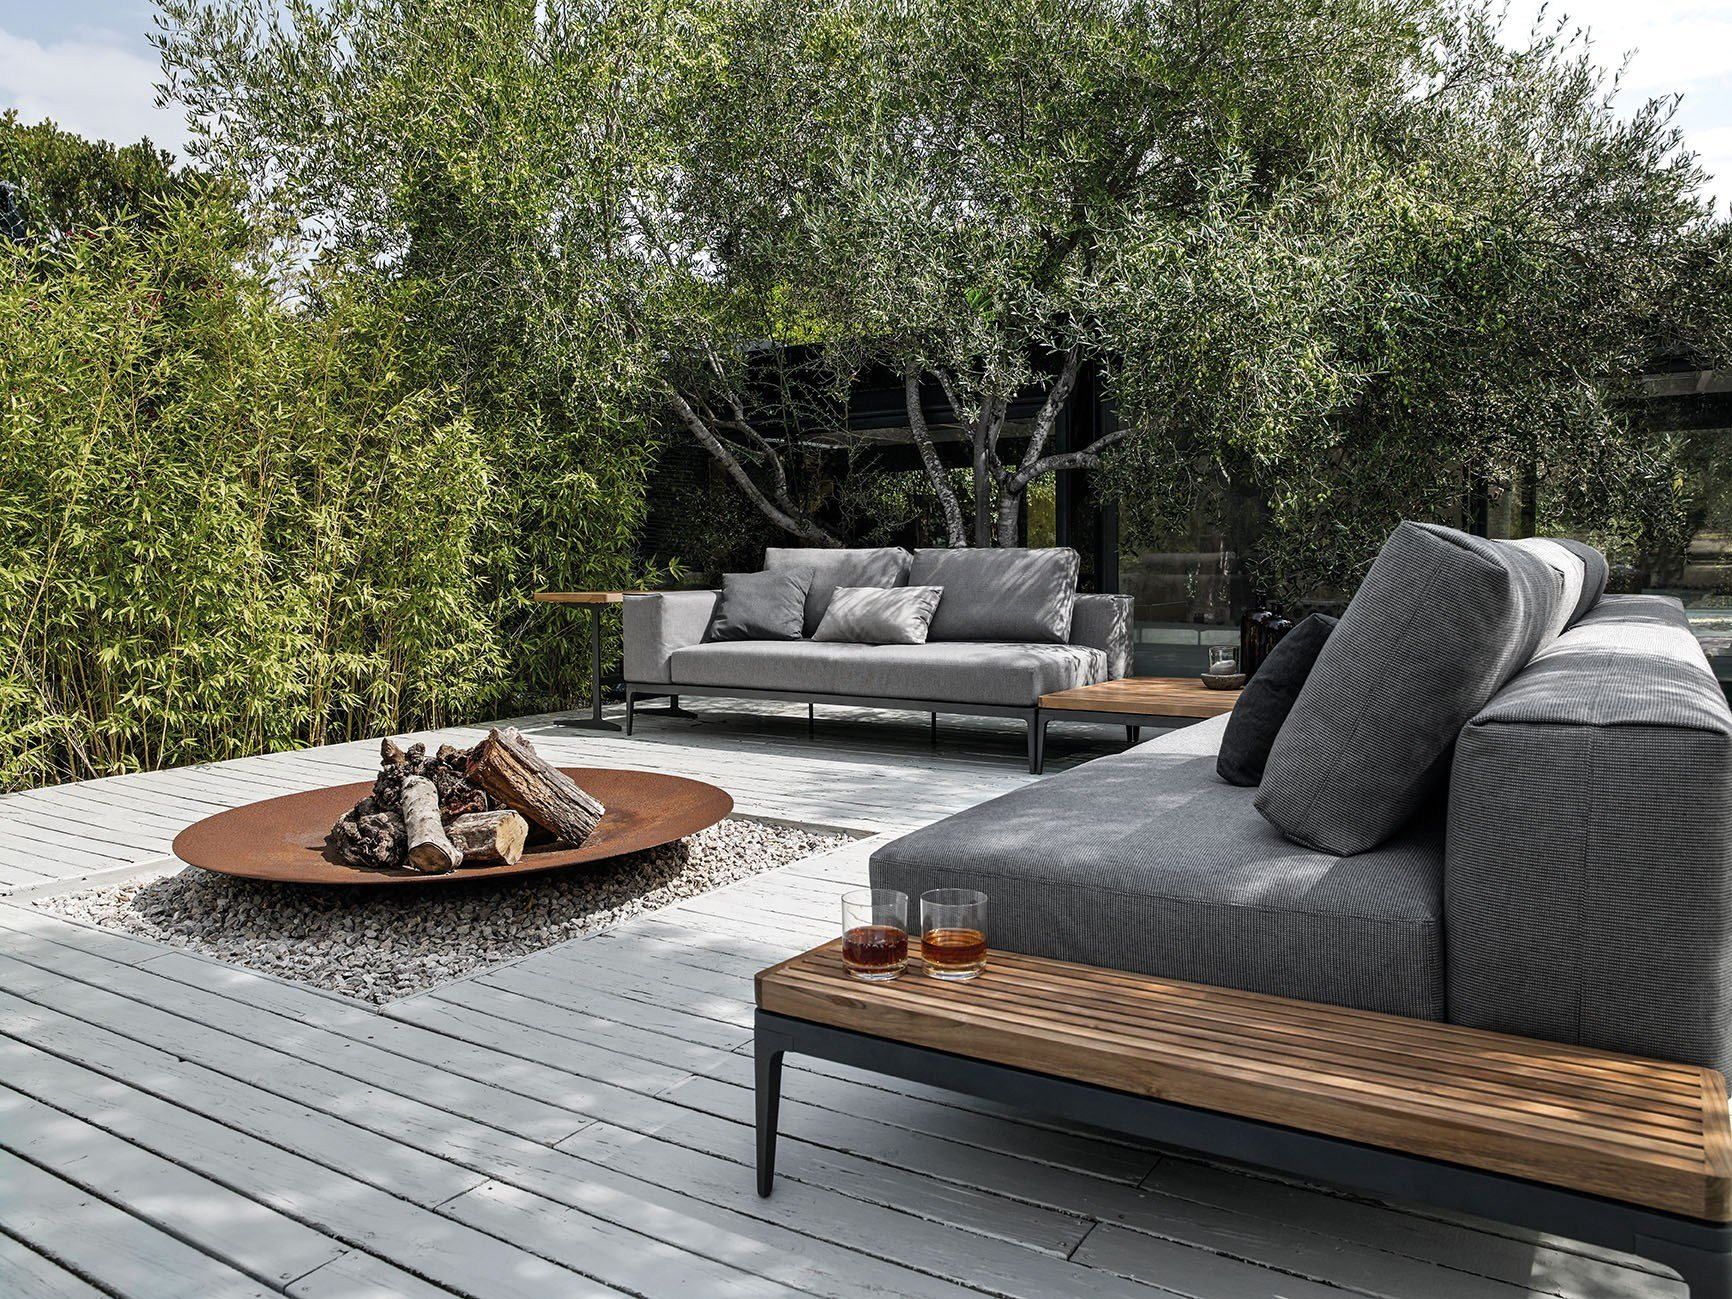 GRID Canapé Collection Grid Outdoor Lounge by Gloster ...